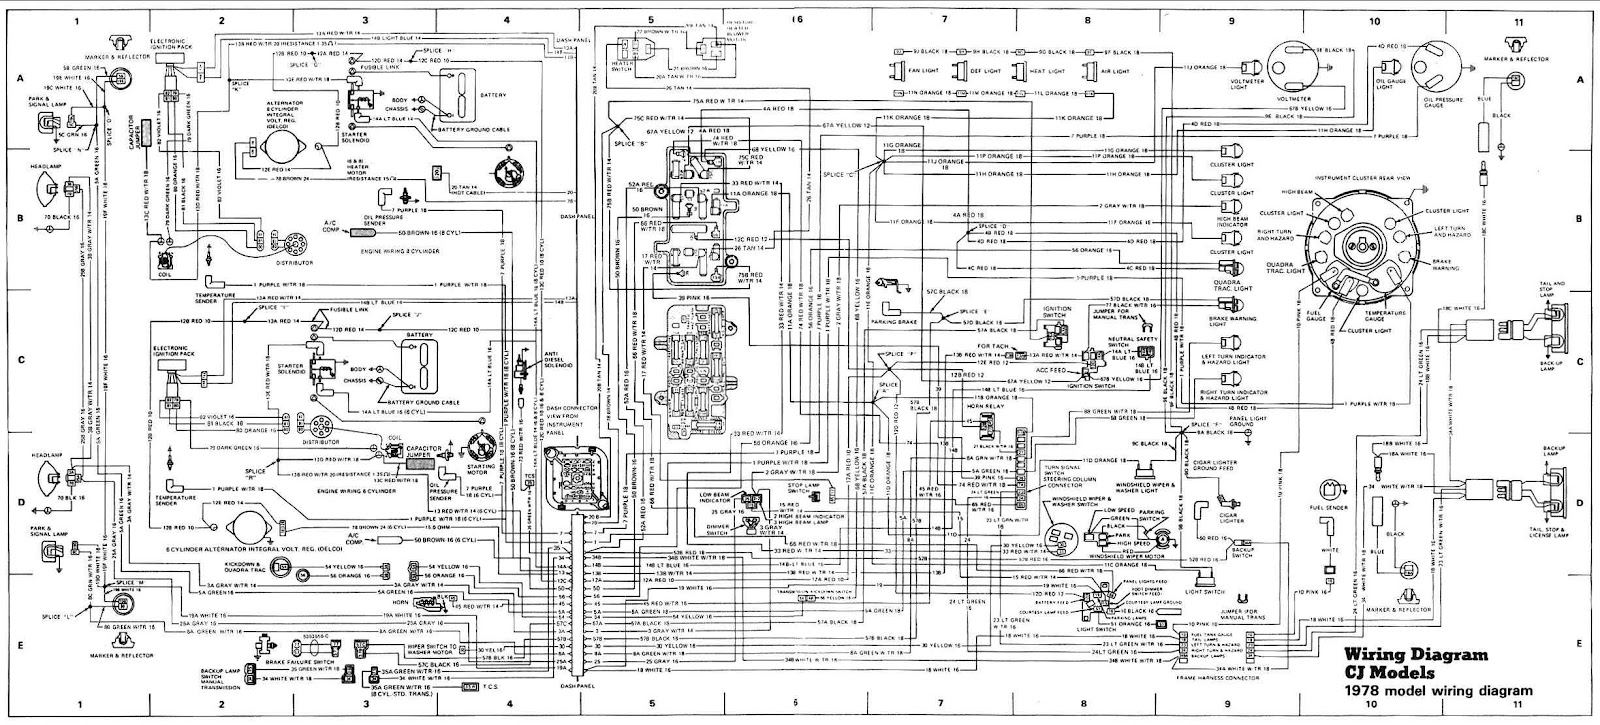 Jeep+CJ+Models+1978+Complete+Electrical+Wiring+Diagram 1978 jeep cj5 wiring diagram on 1978 download wirning diagrams jeep cj5 wiring diagram at gsmx.co